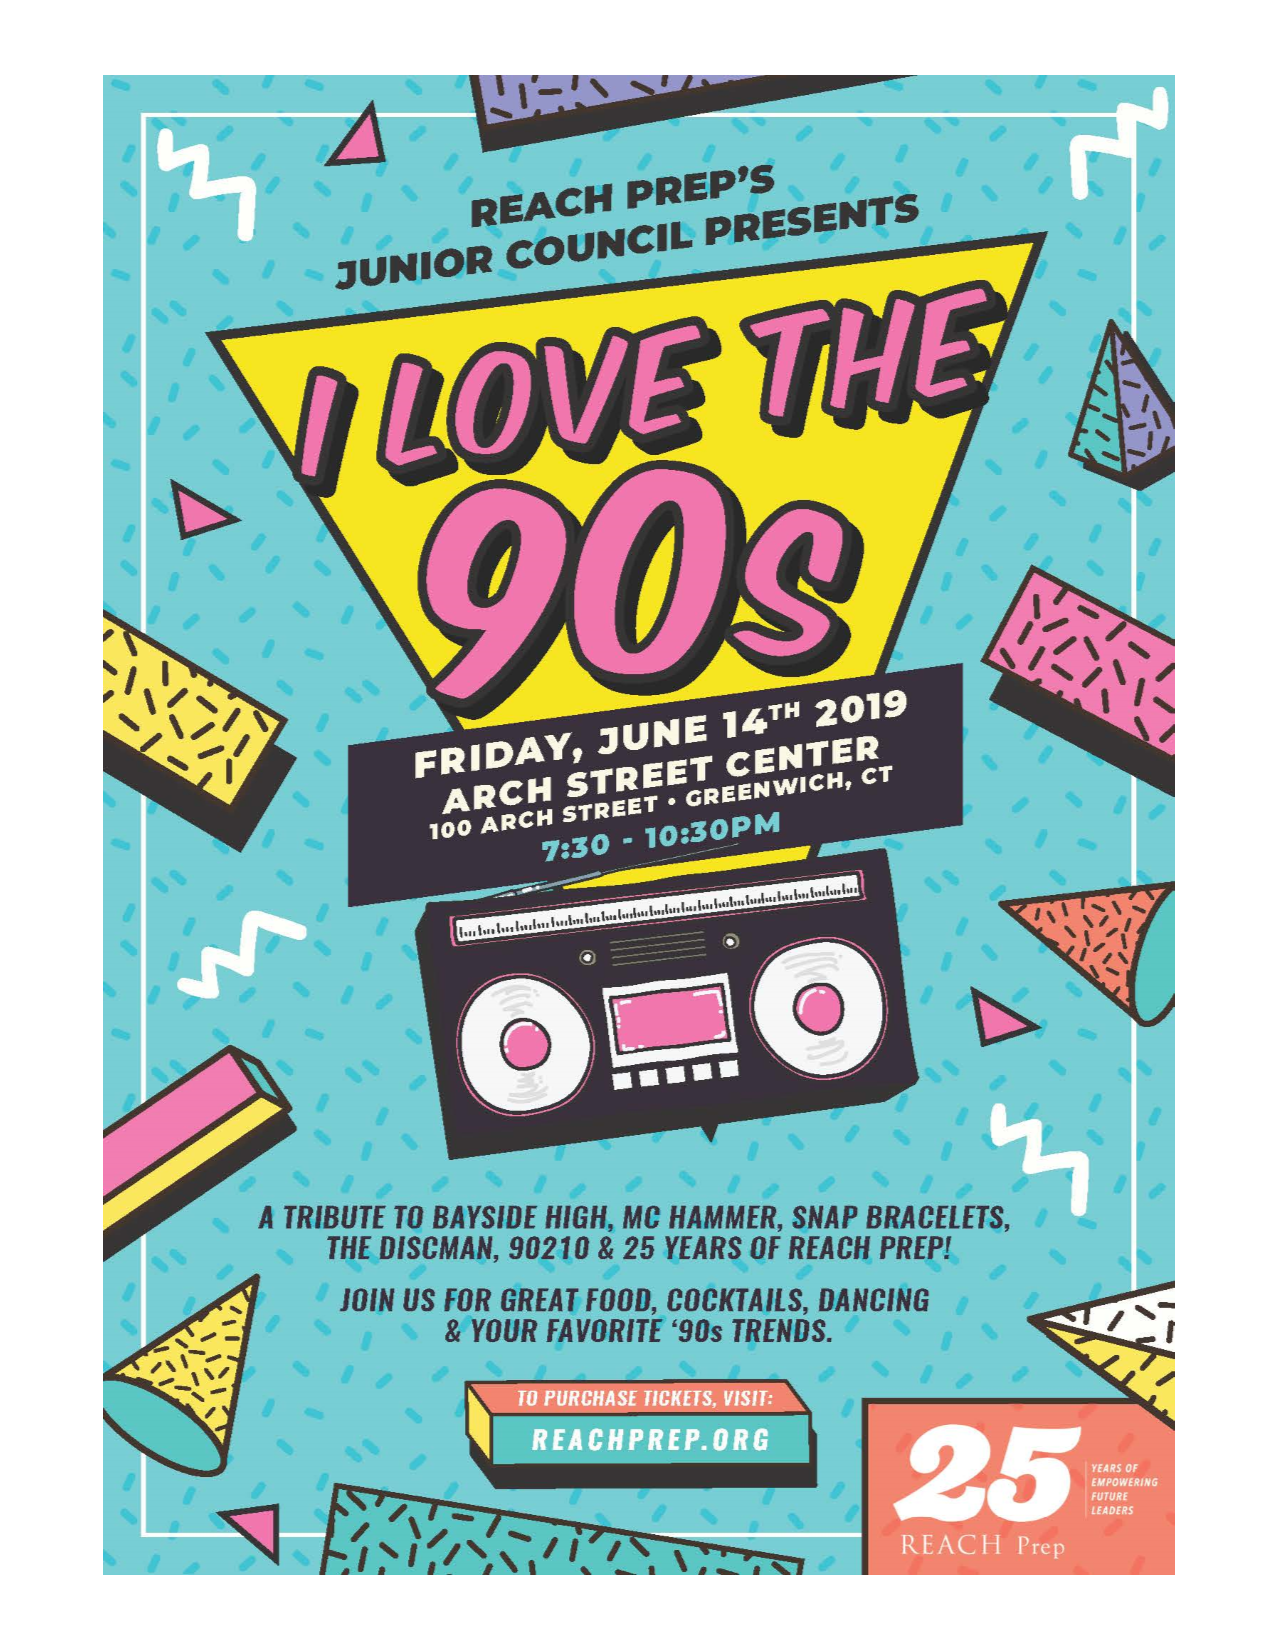 REACH Prep's Junior Council Presents - I Love the '90s!